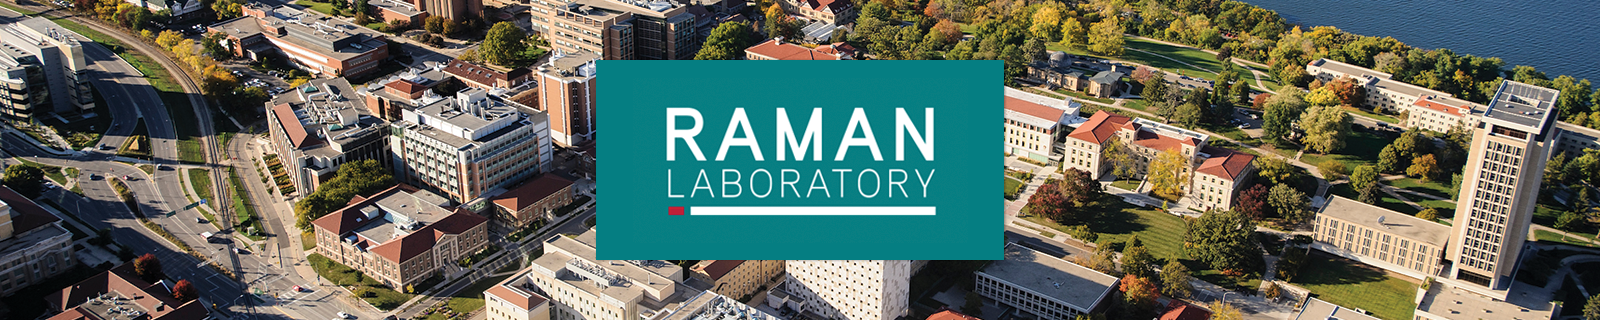 Raman Lab UW Madison Aerial view